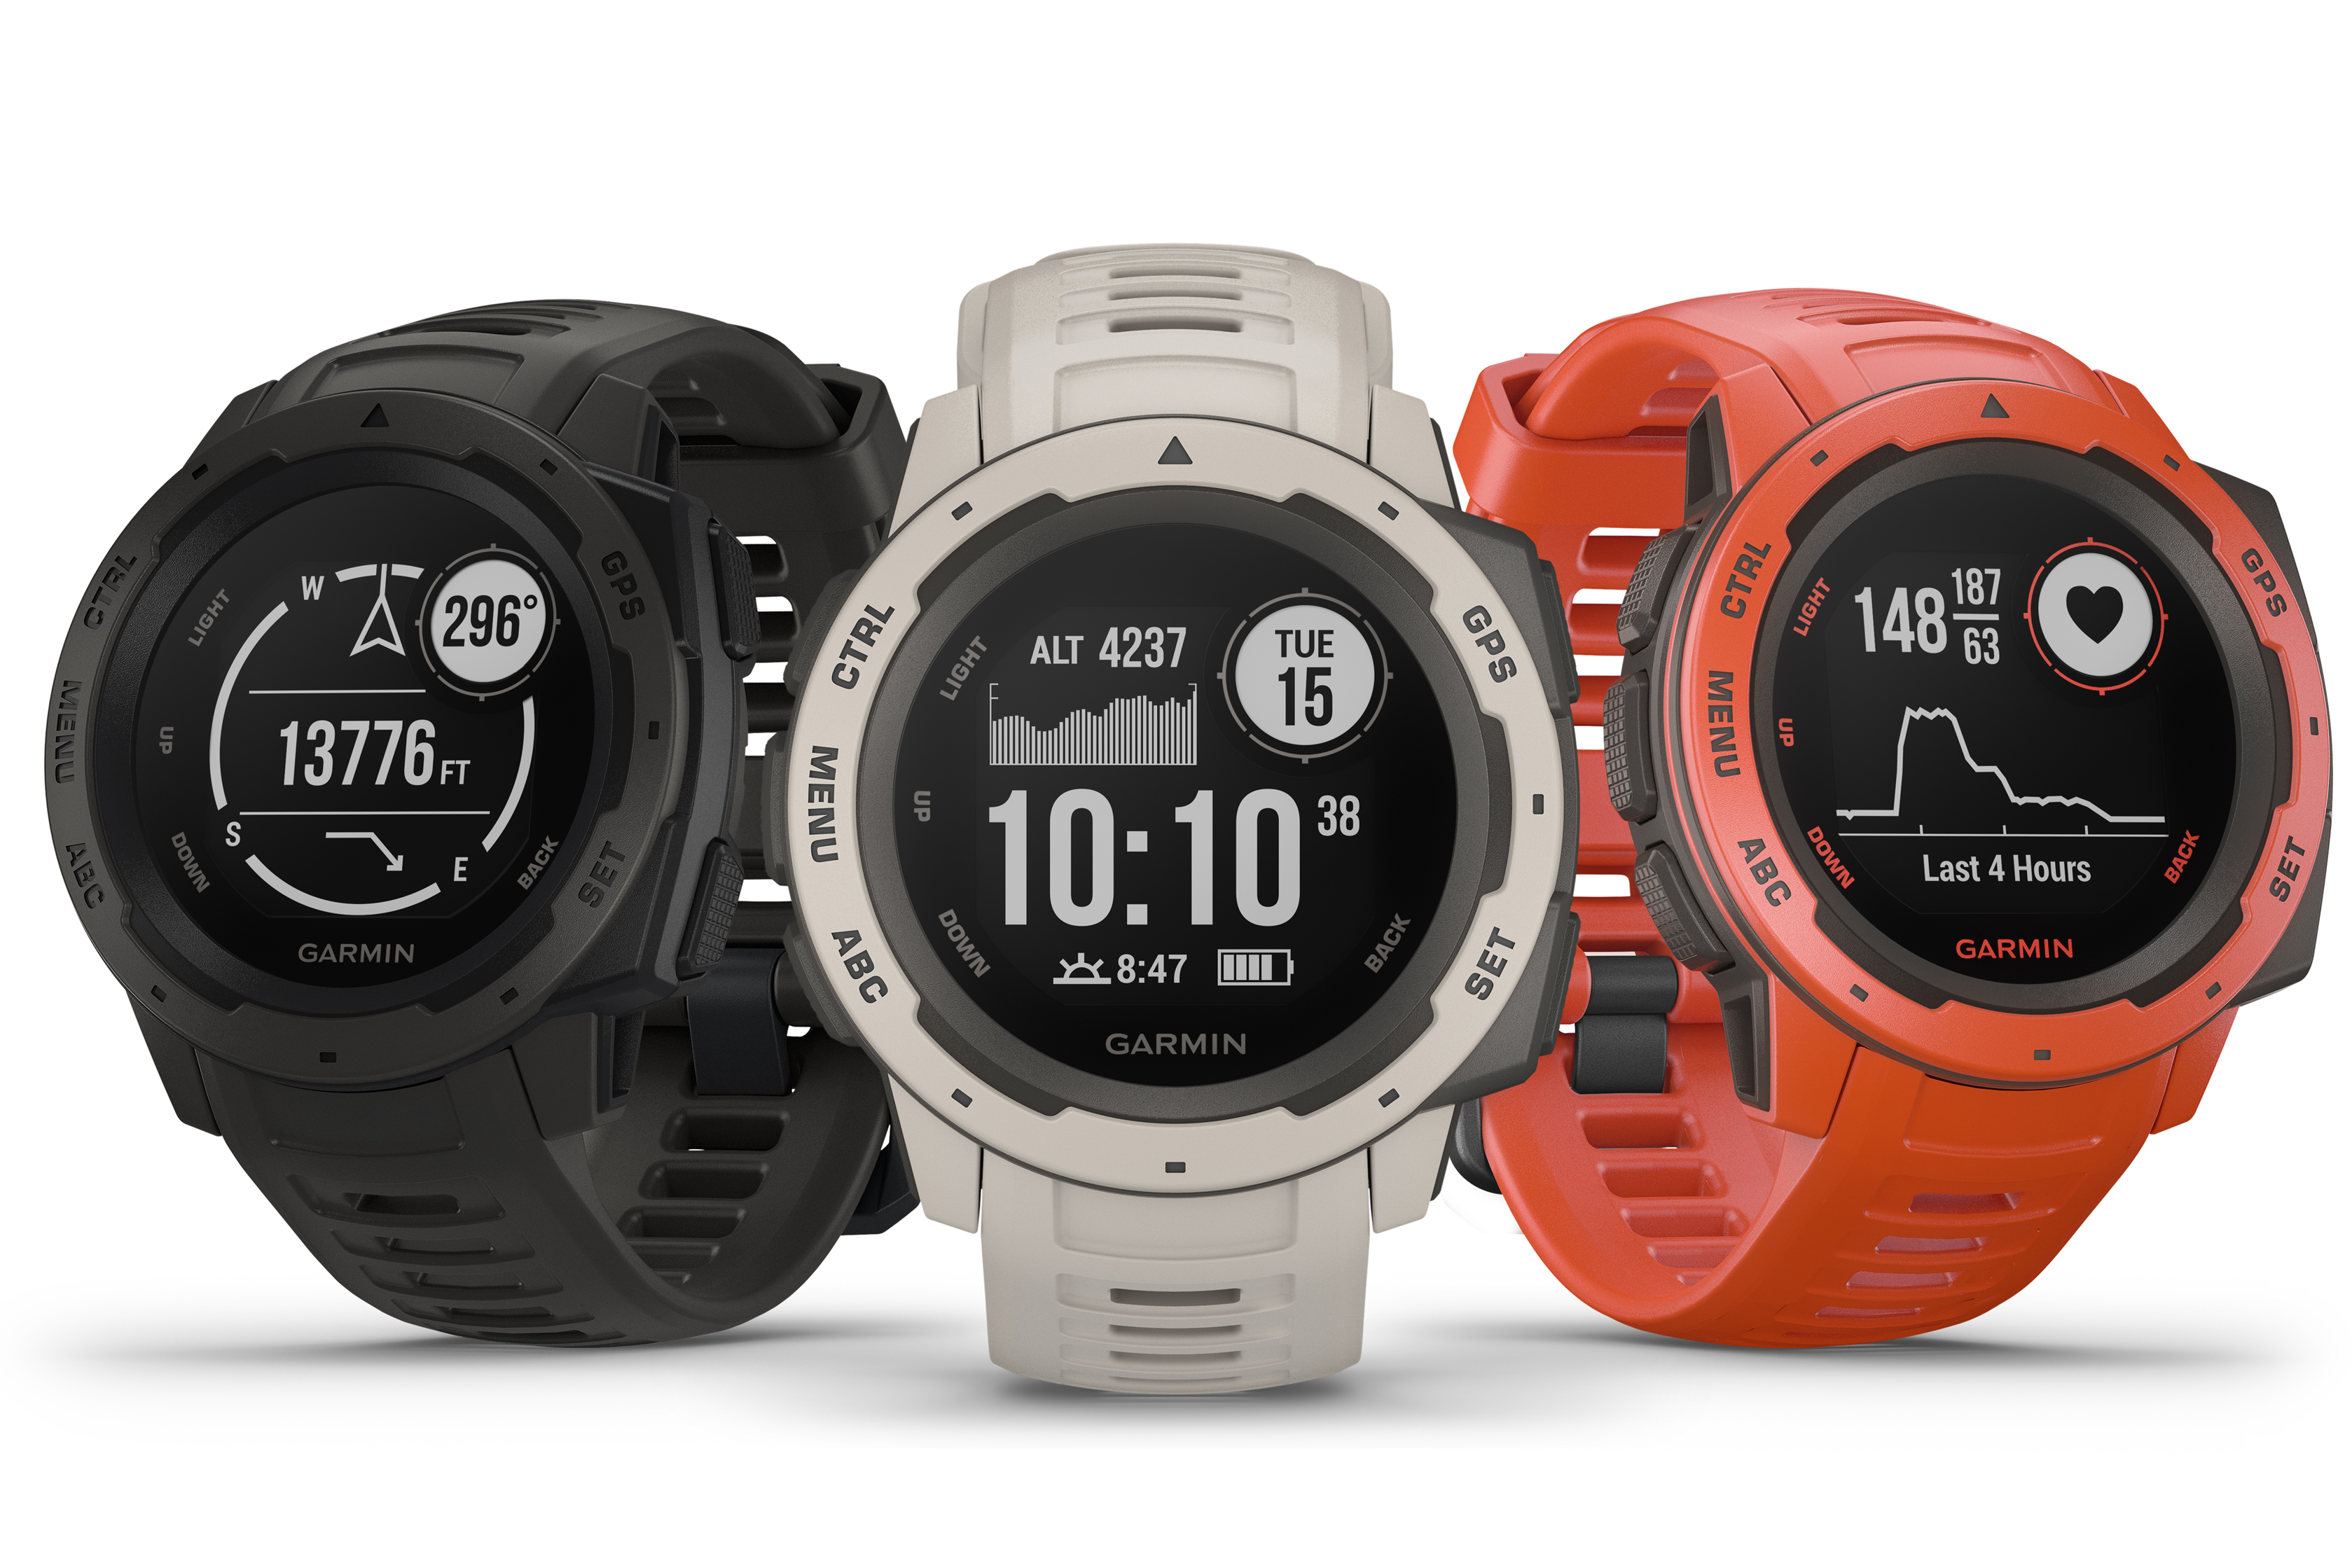 Garmin Instinct GPS watch is tough like you for the tough outdoors